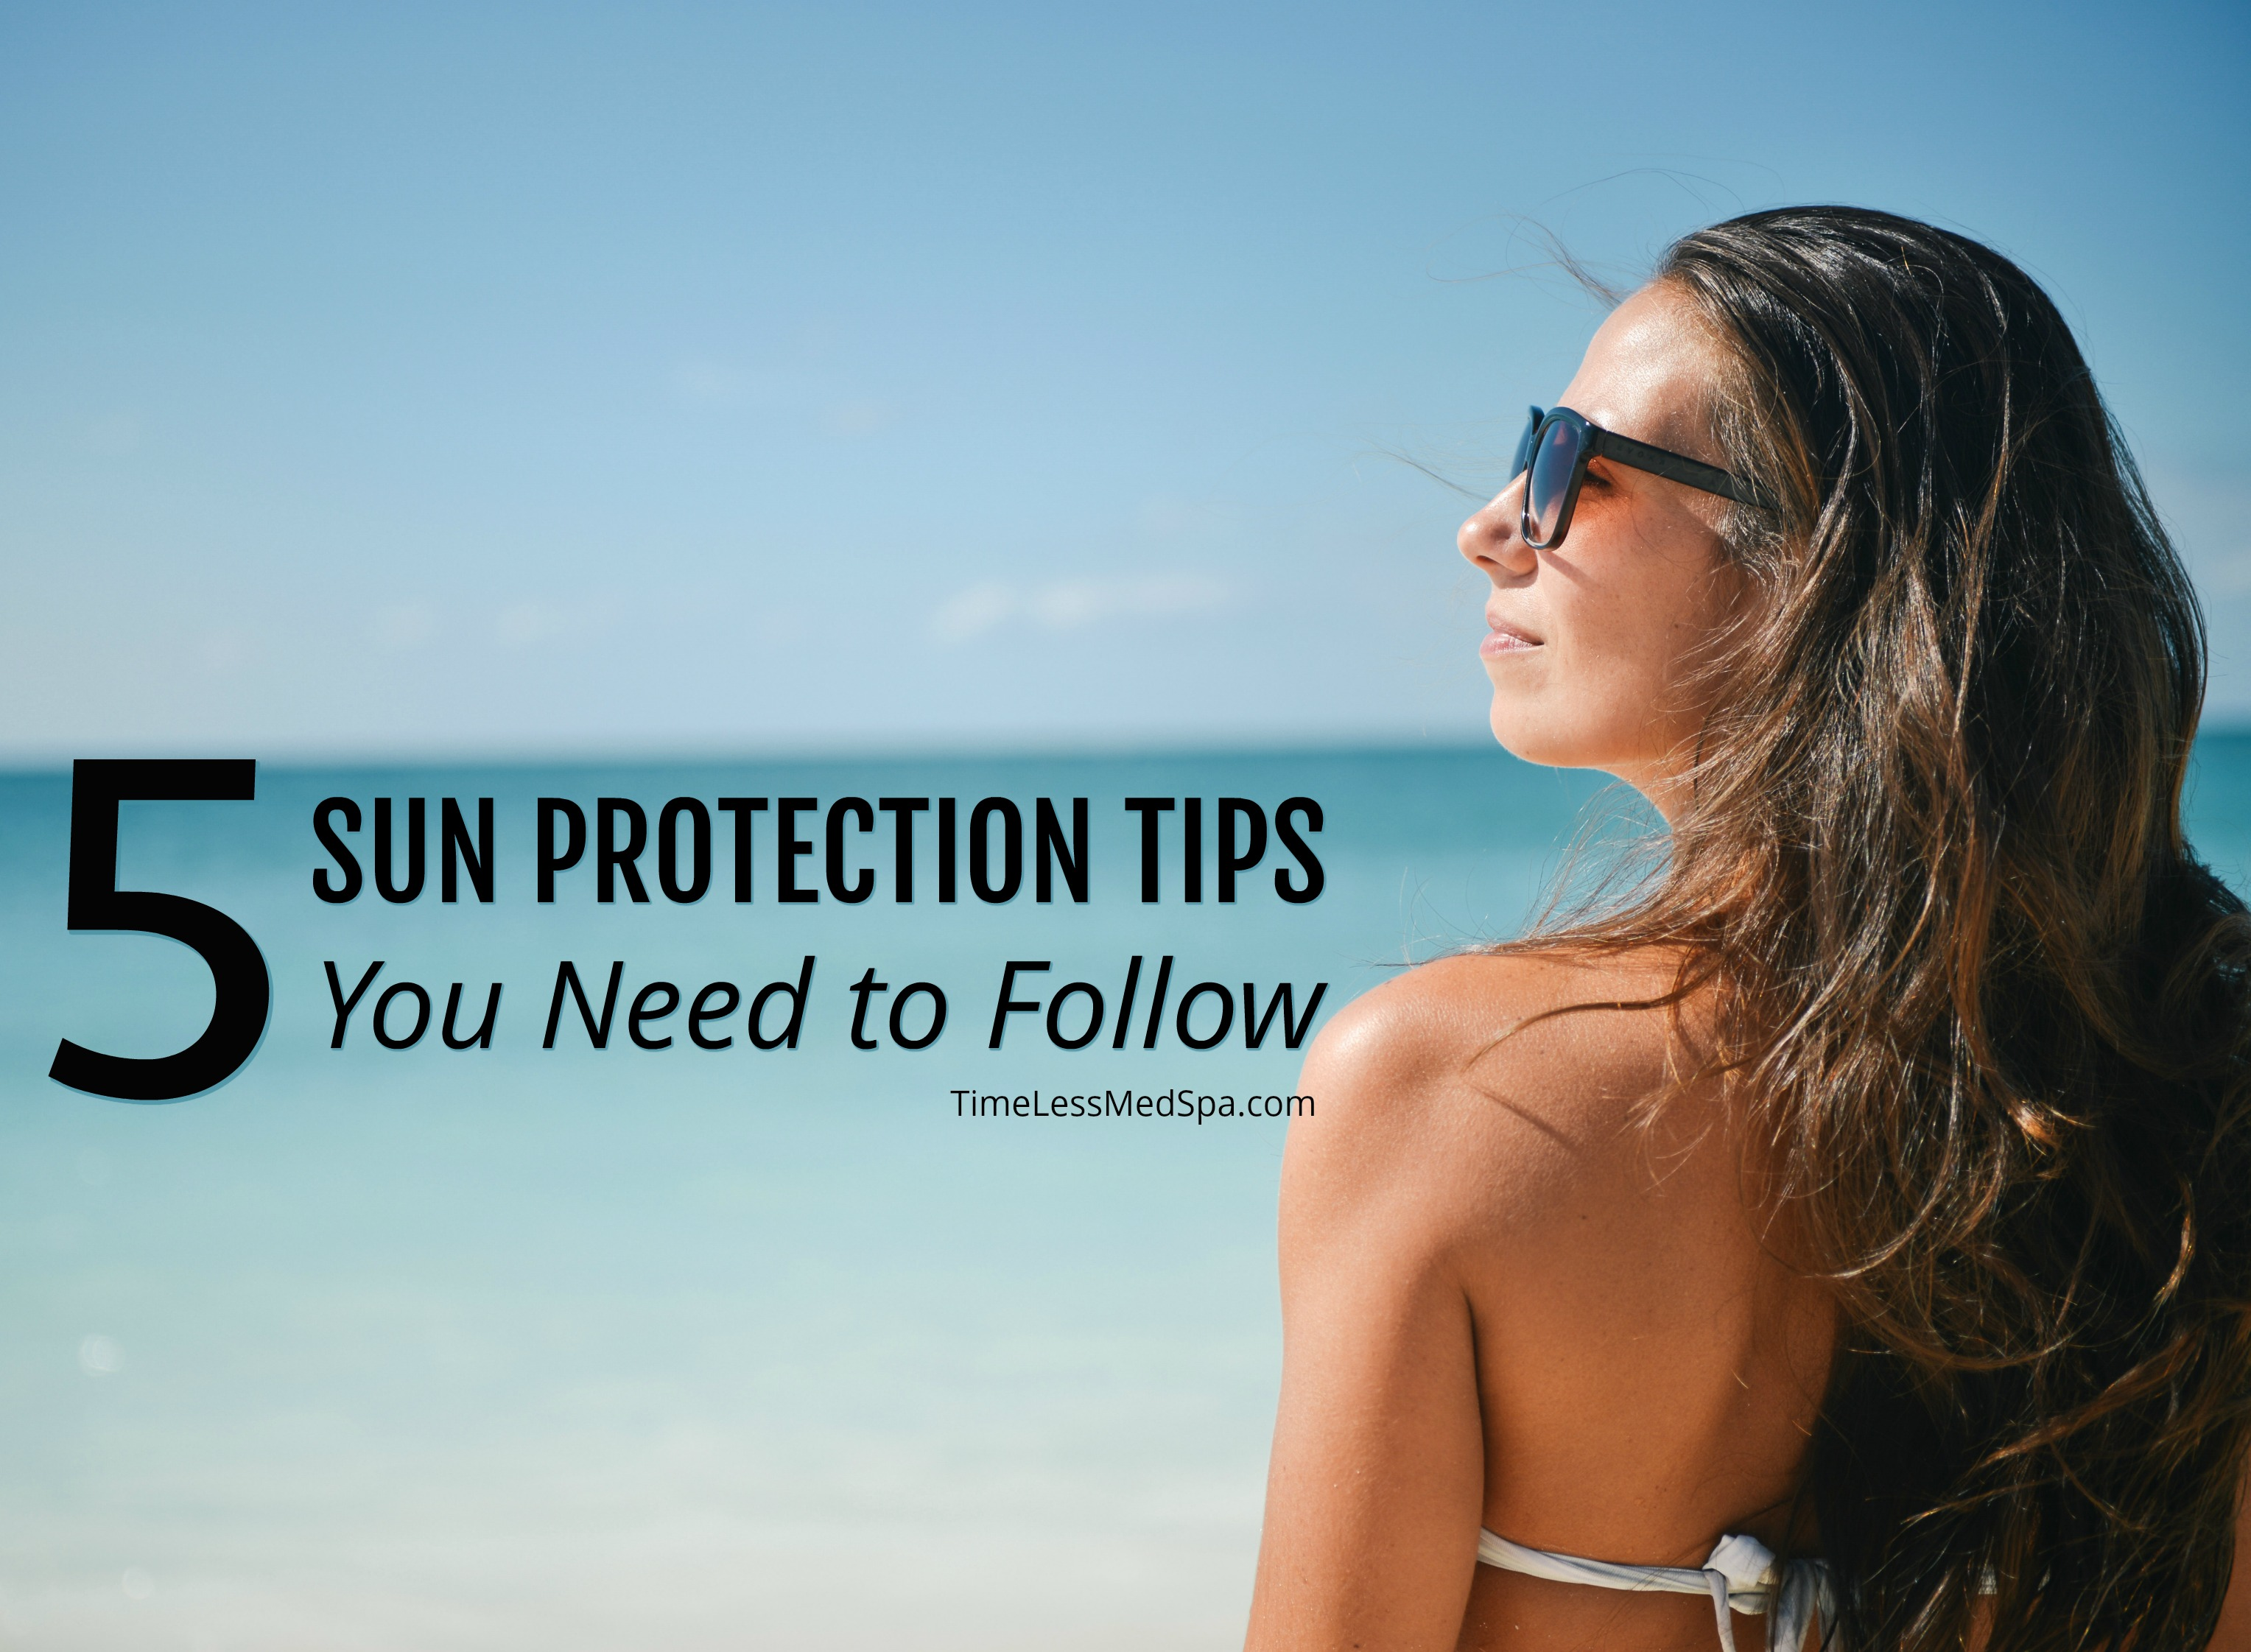 5 Sun Protection Tips You Need to Follow